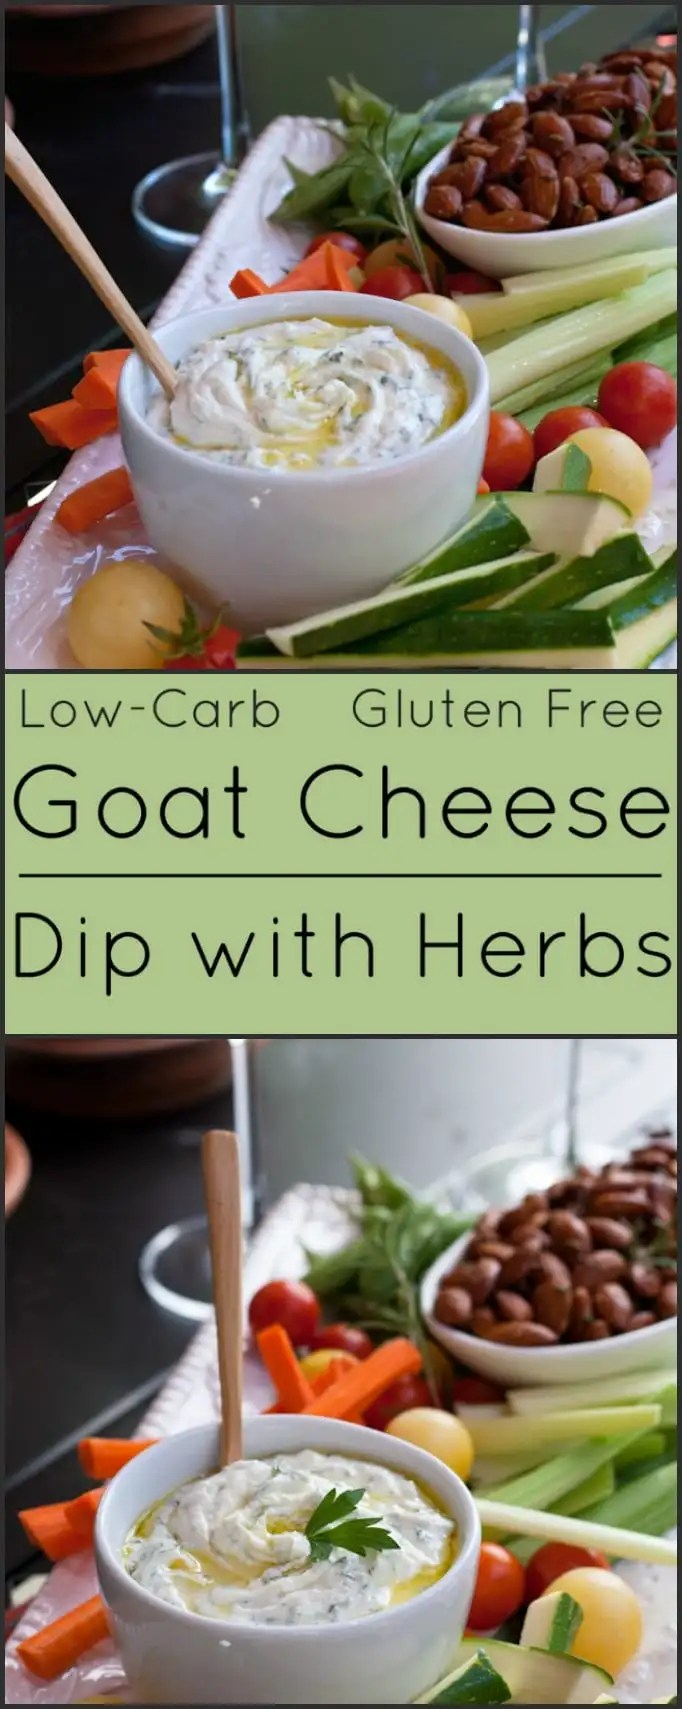 This Goat Cheese Dip with Herbs is low-carb and gluten free. It's a healthy addition to any party.